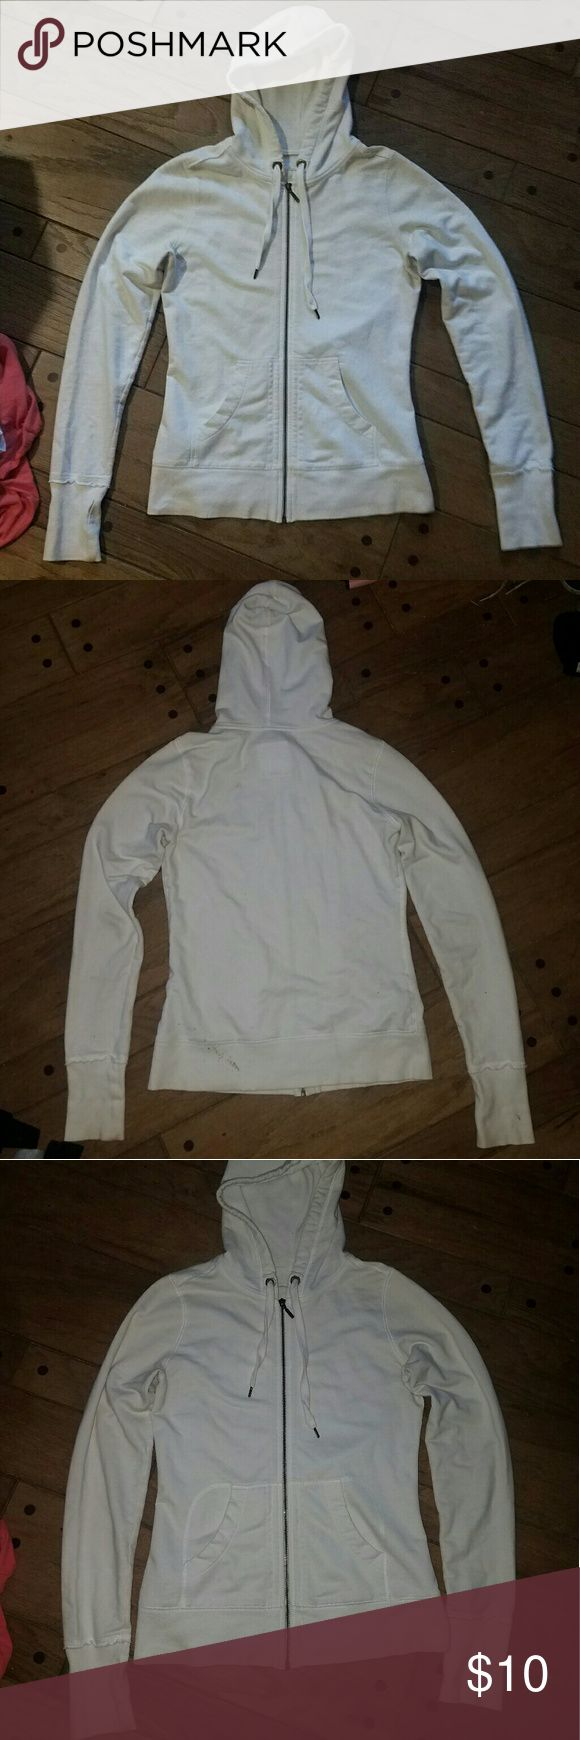 White Zip Up Hoodie Size small full zip up hooded sweatshirt by Merona. White sweater hoodie jacket. Stretchy material and a long fit. Drawstrings on hood, thermal type lining inside the hood. Super cute white hoodie!!! Some discoloration at the wrists, from wear. I'm sure it will come out and brighten up when bleached with other whites!! Otherwise in excellent condition!! Nice high quality hoodie, with a flattering fit. Merona Tops Sweatshirts & Hoodies